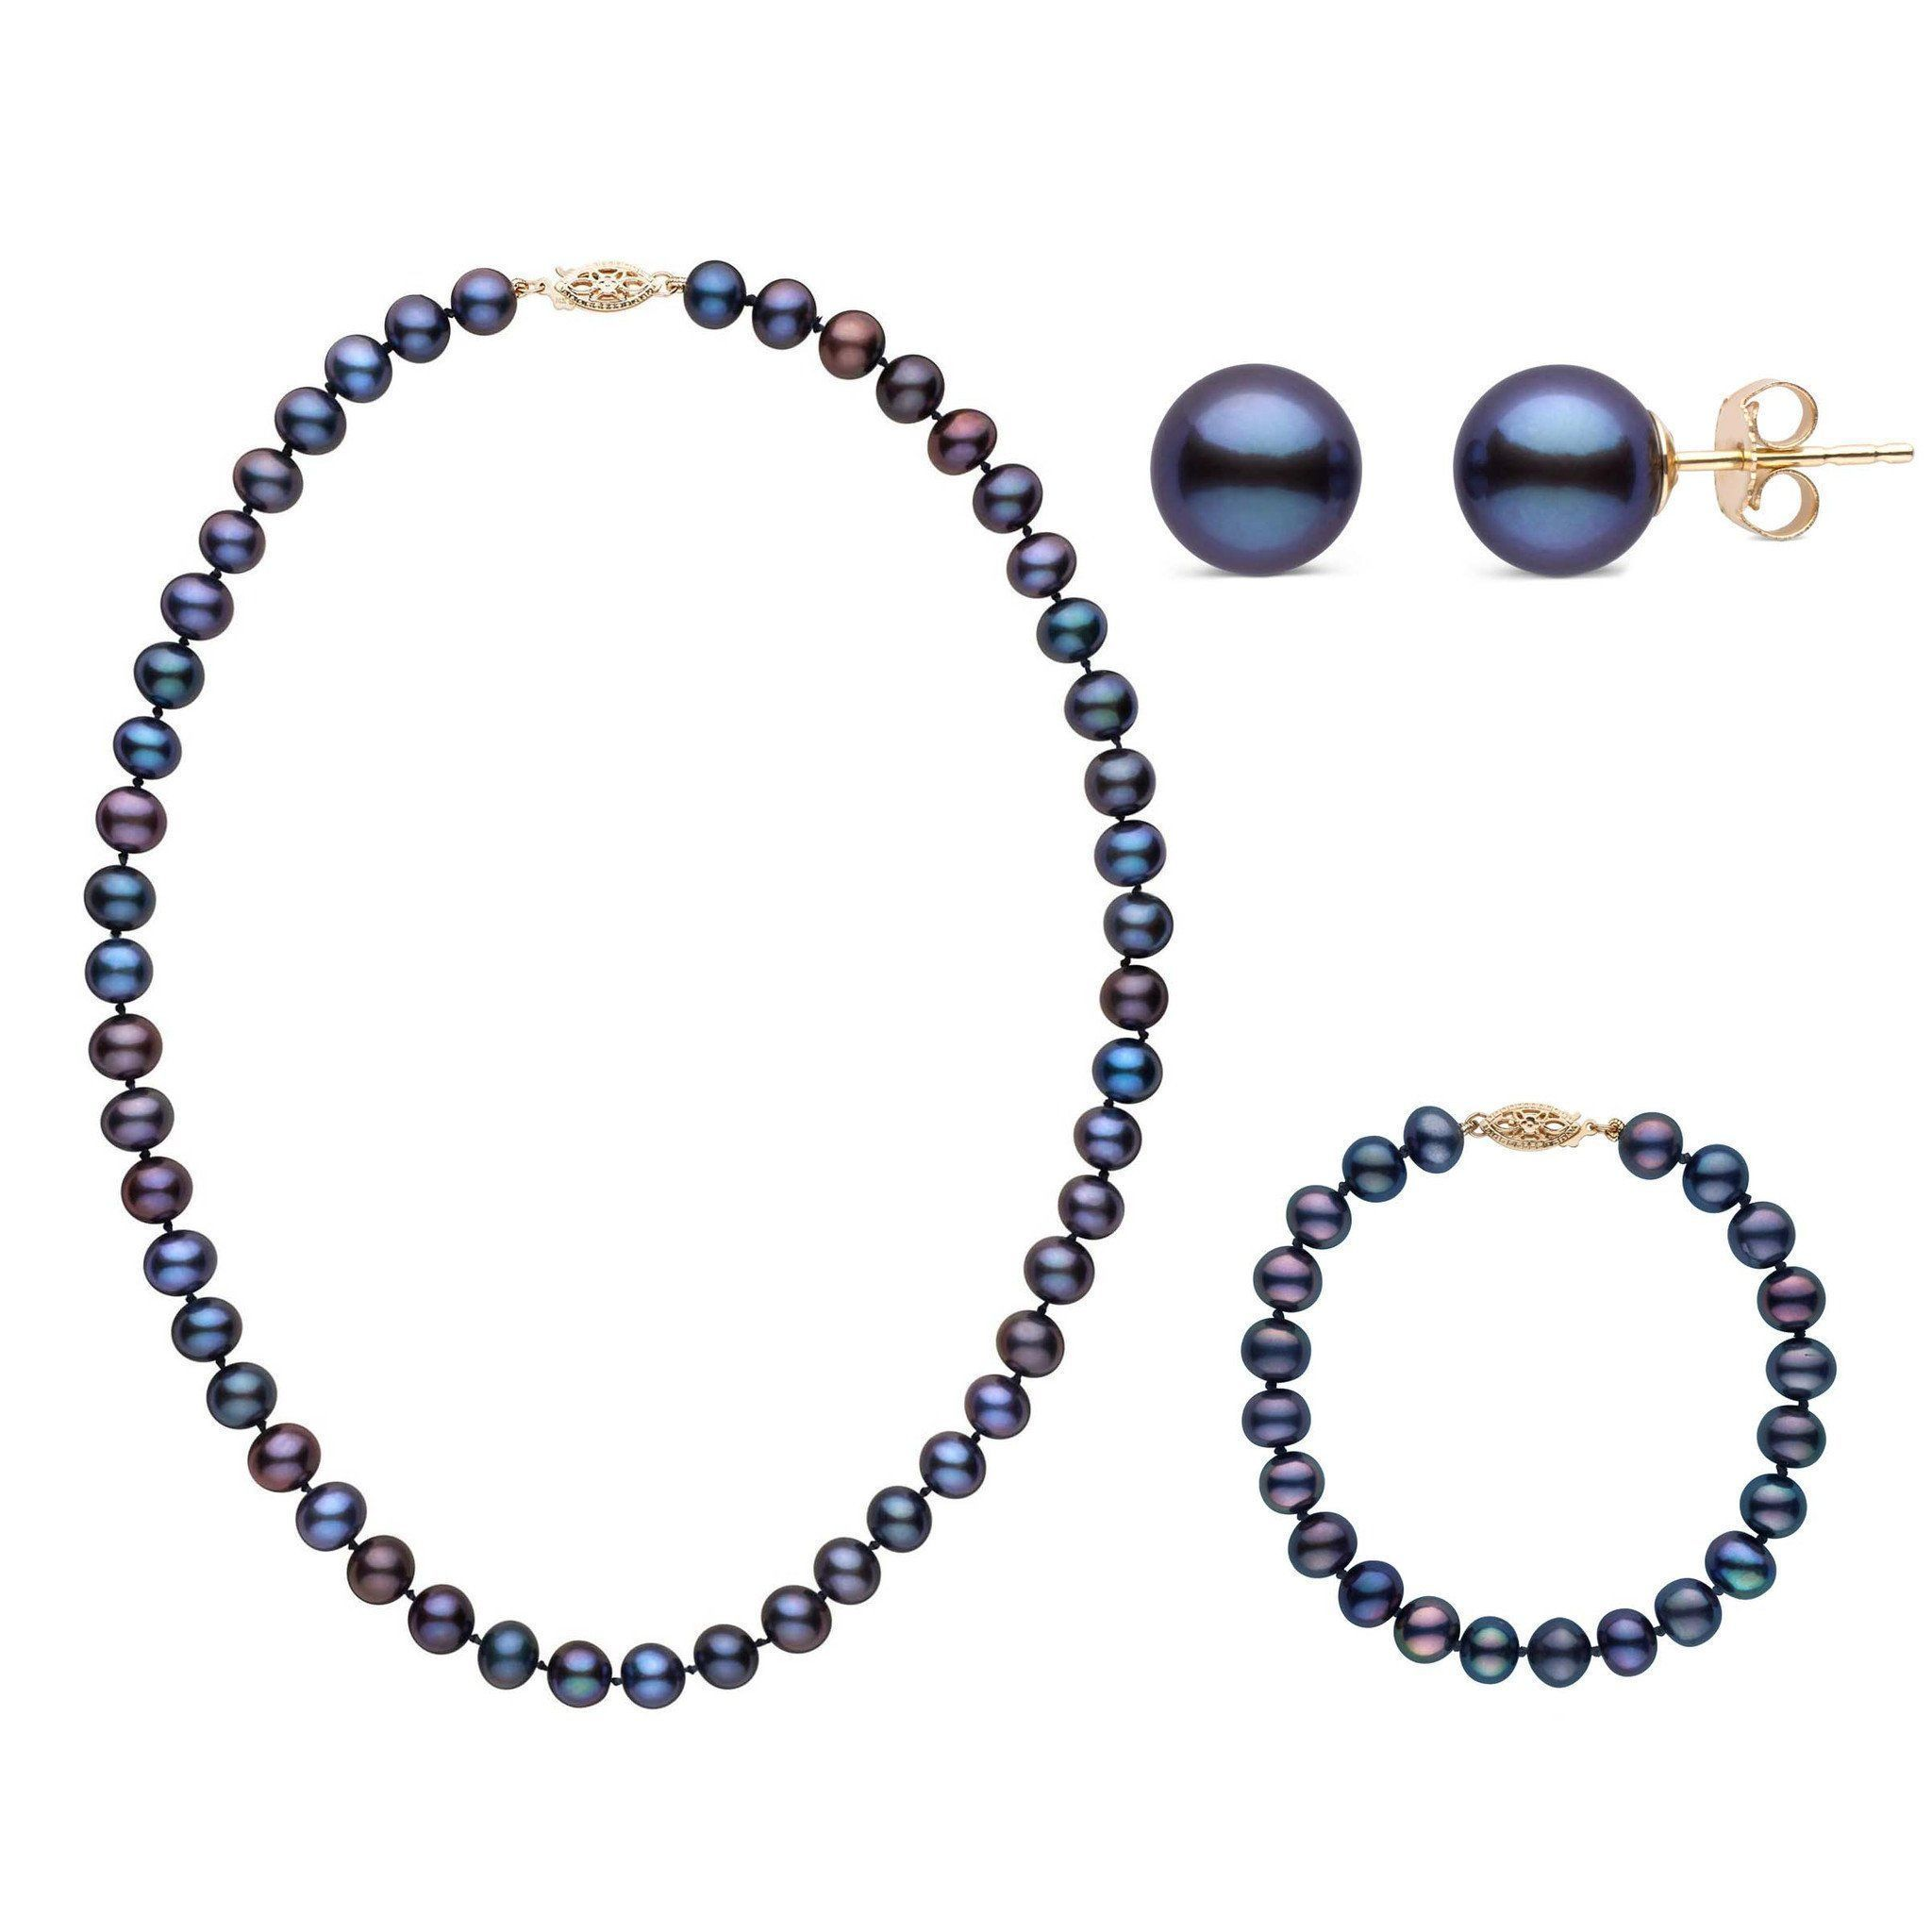 16 Inch 3 Piece Set of 7.5-8.0 mm AA+ Black Freshwater Pearls